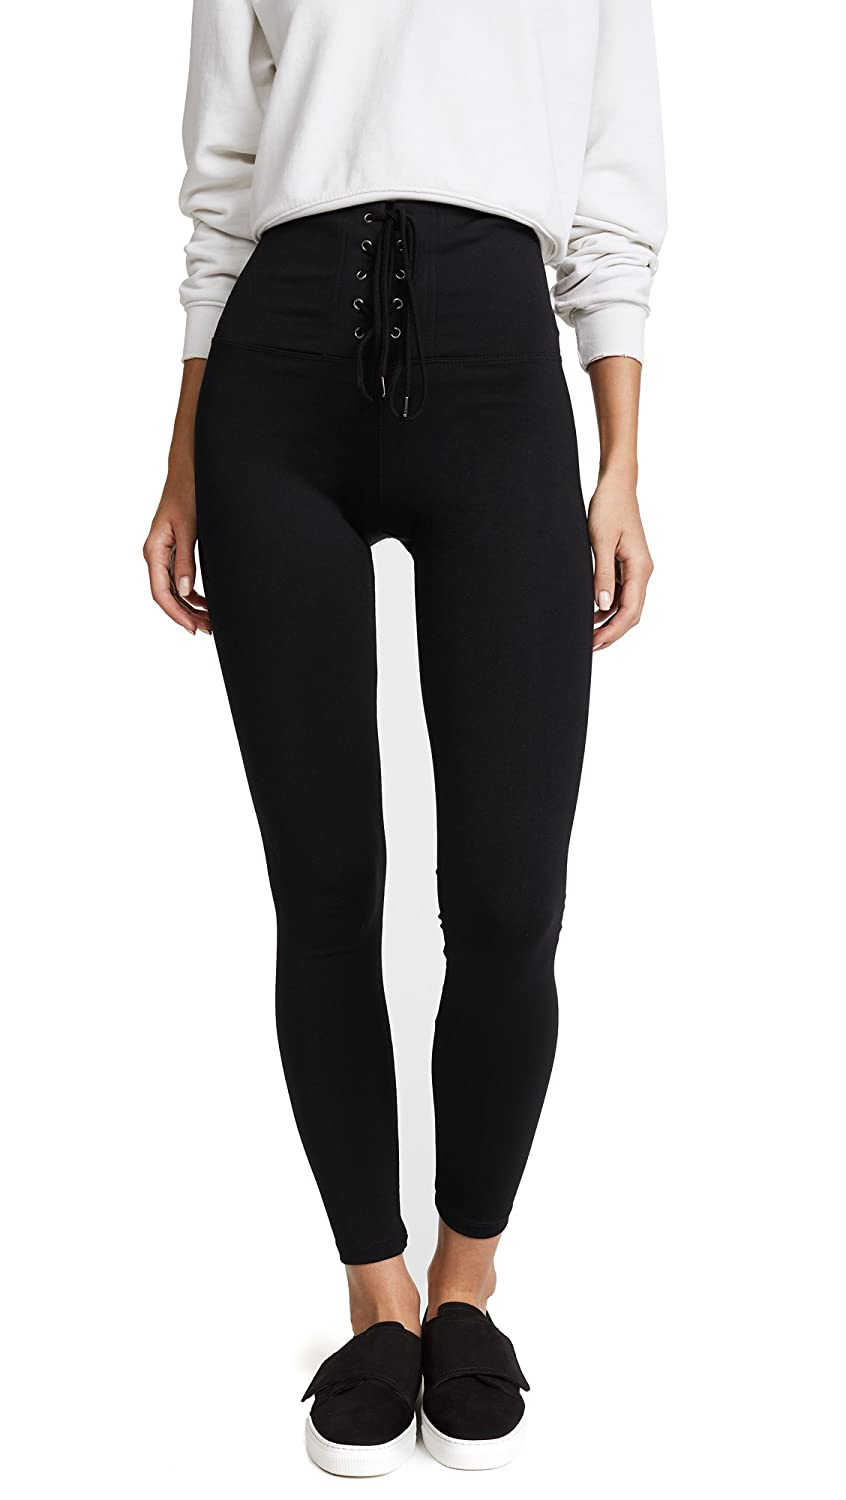 David Lerner Women's High Rise Corset Leggings